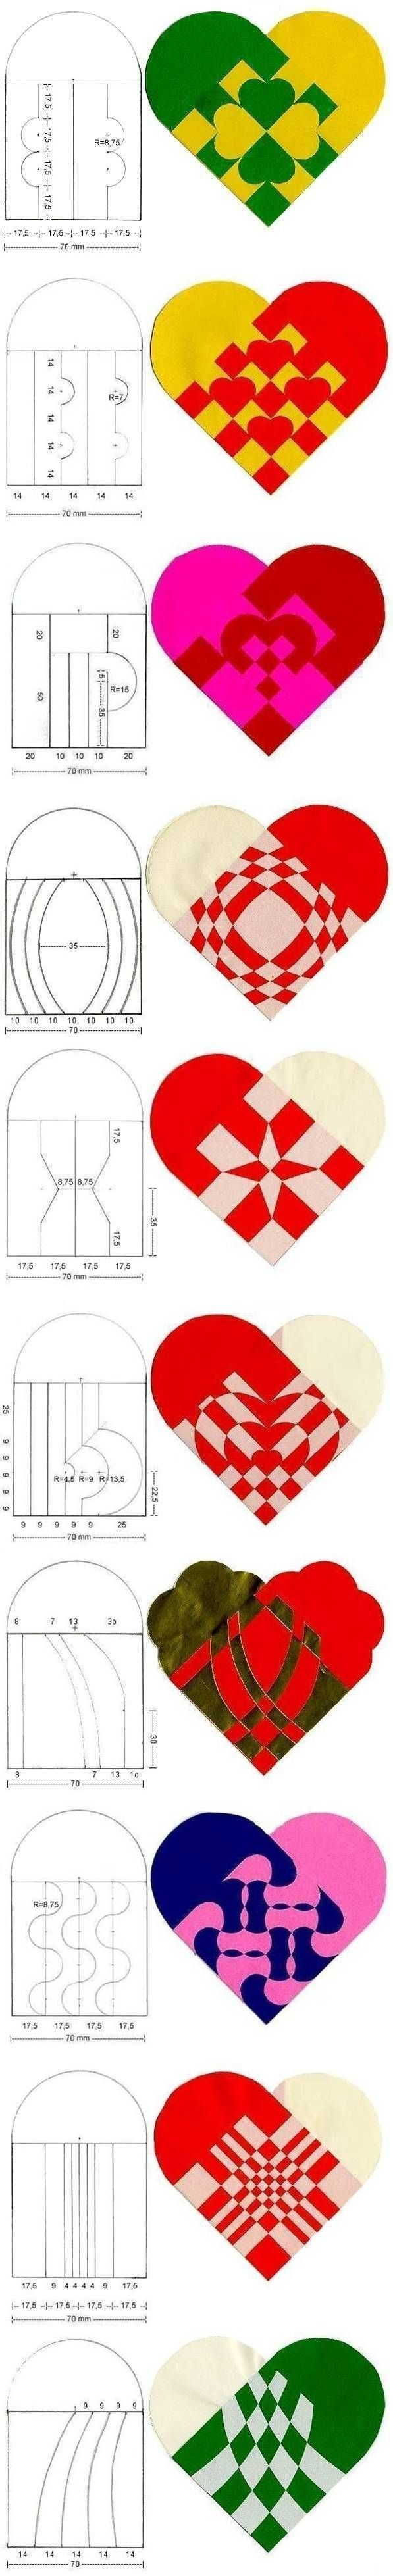 DIY Fabulous Heart Patterns DIY Projects | UsefulDIY.com